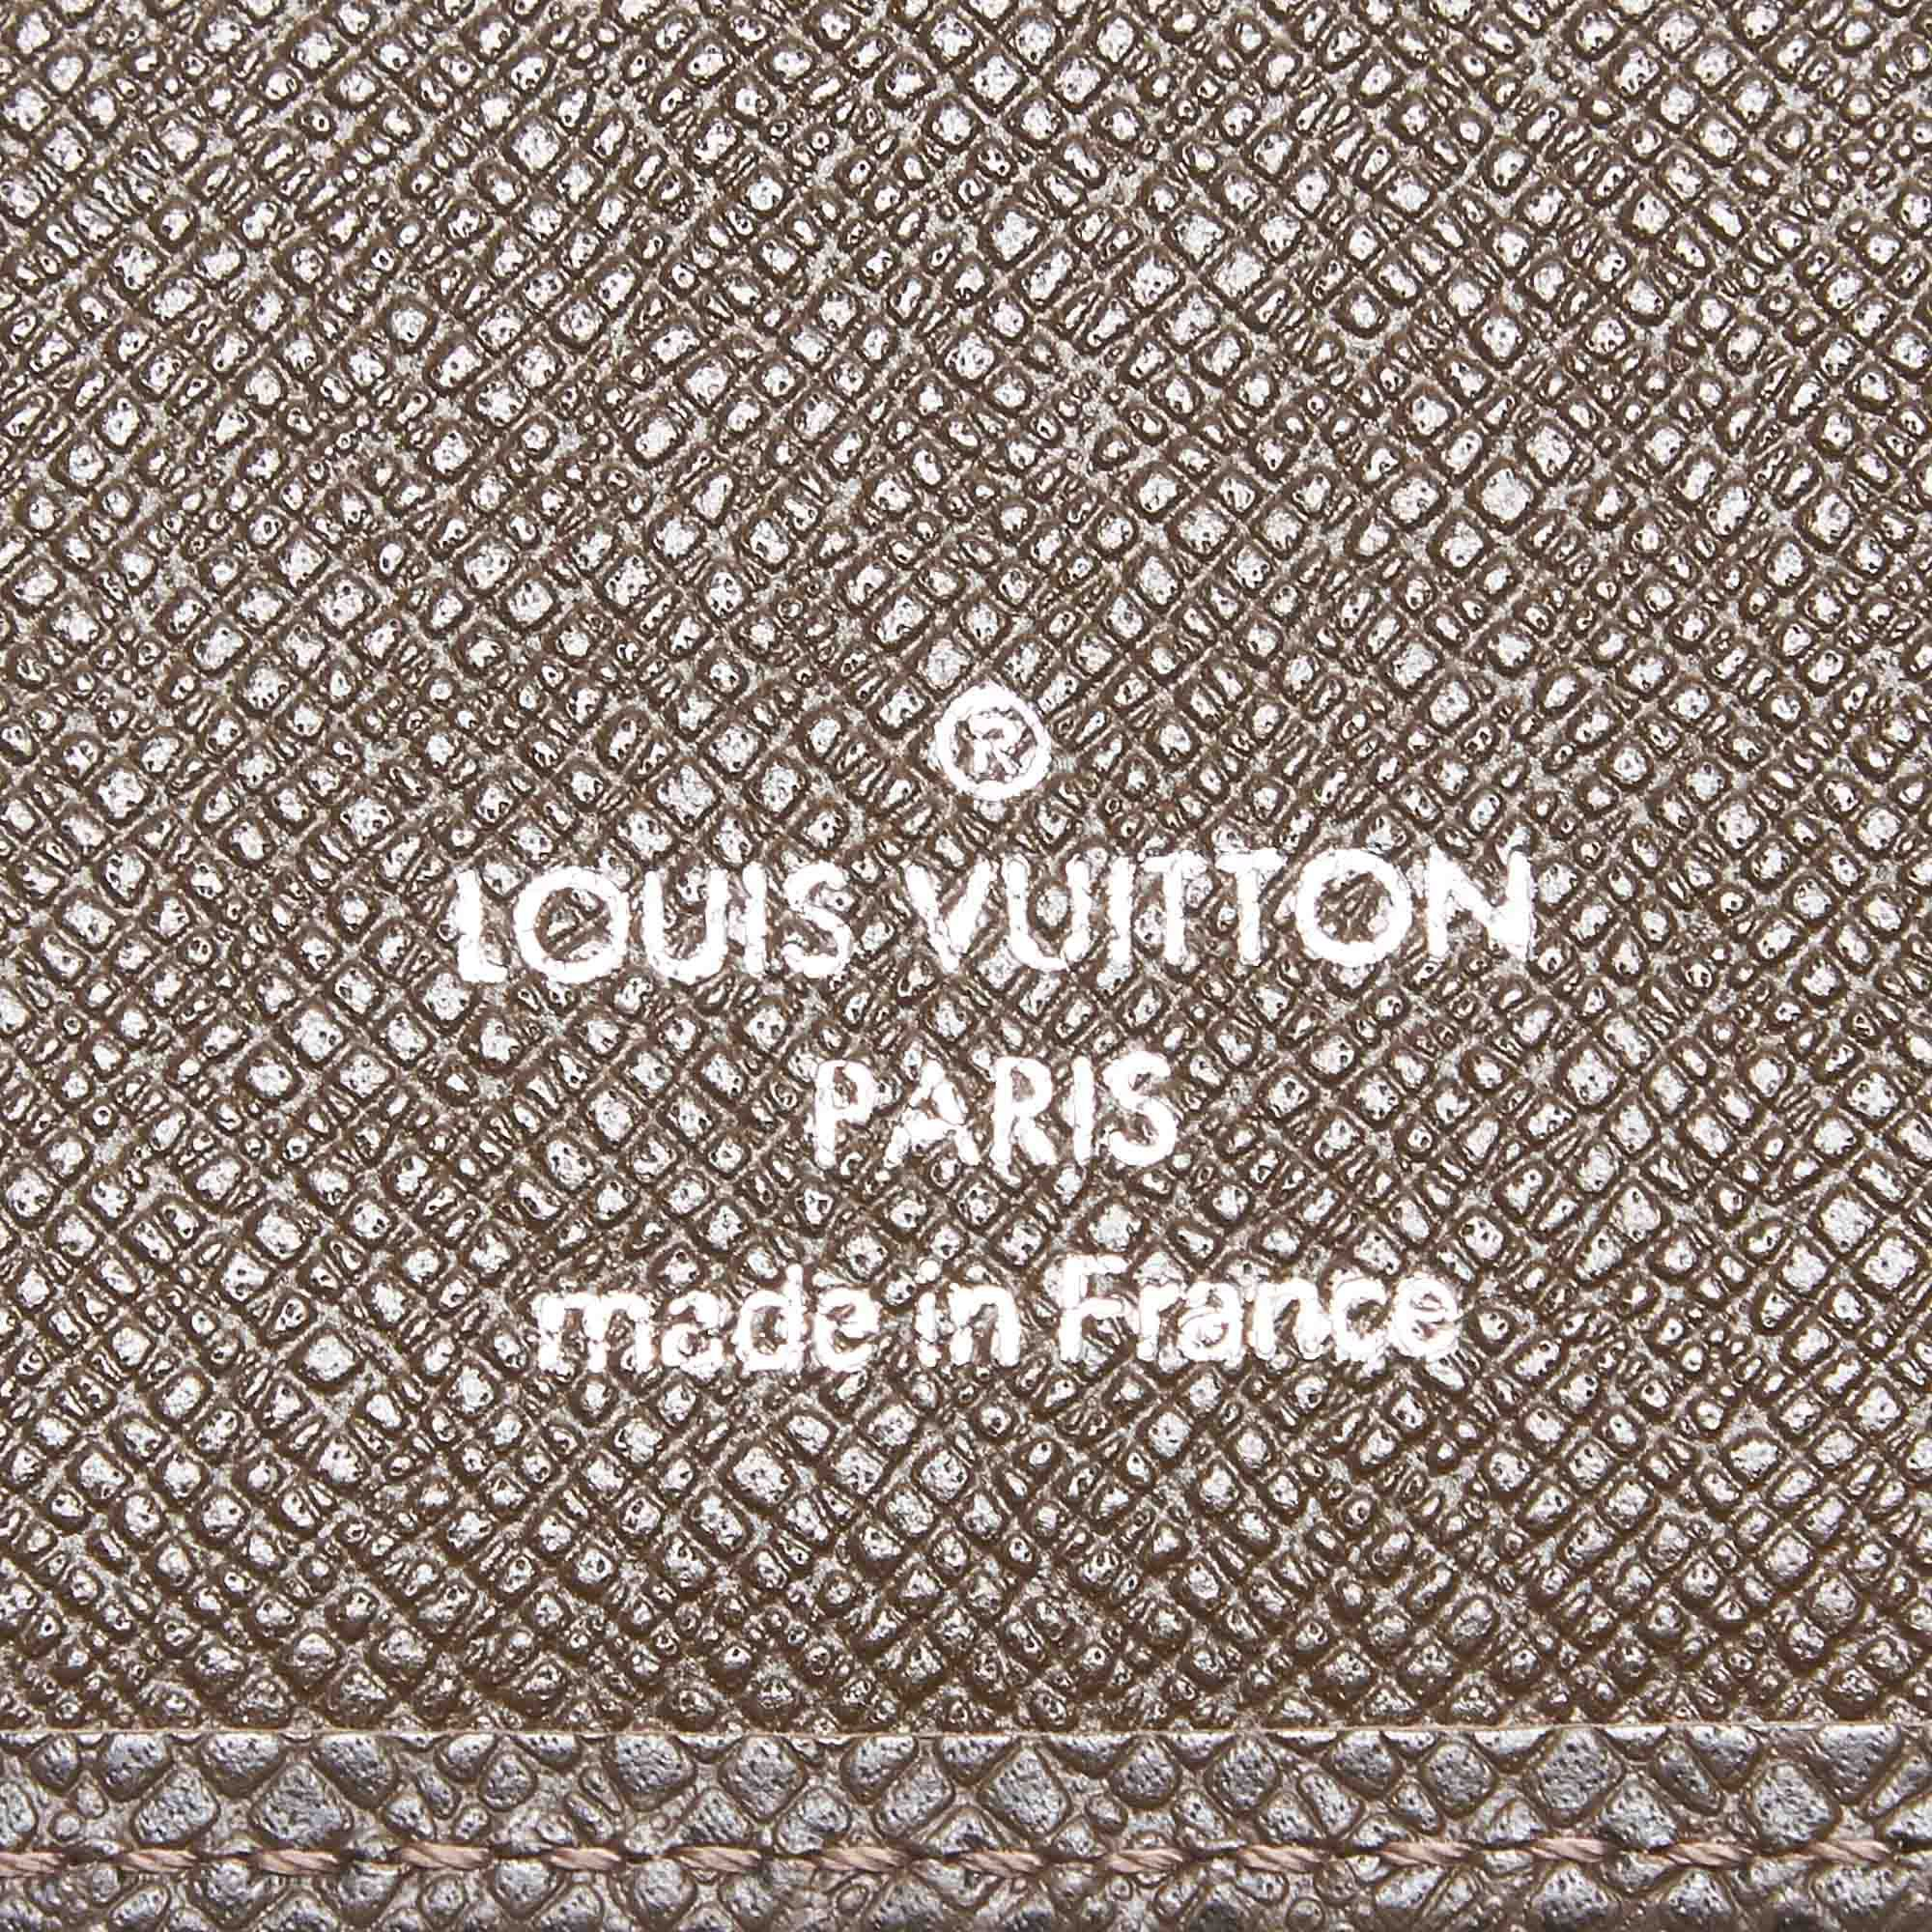 Vintage Louis Vuitton Taiga Porte-Cartes Credit Yen Wallet Brown